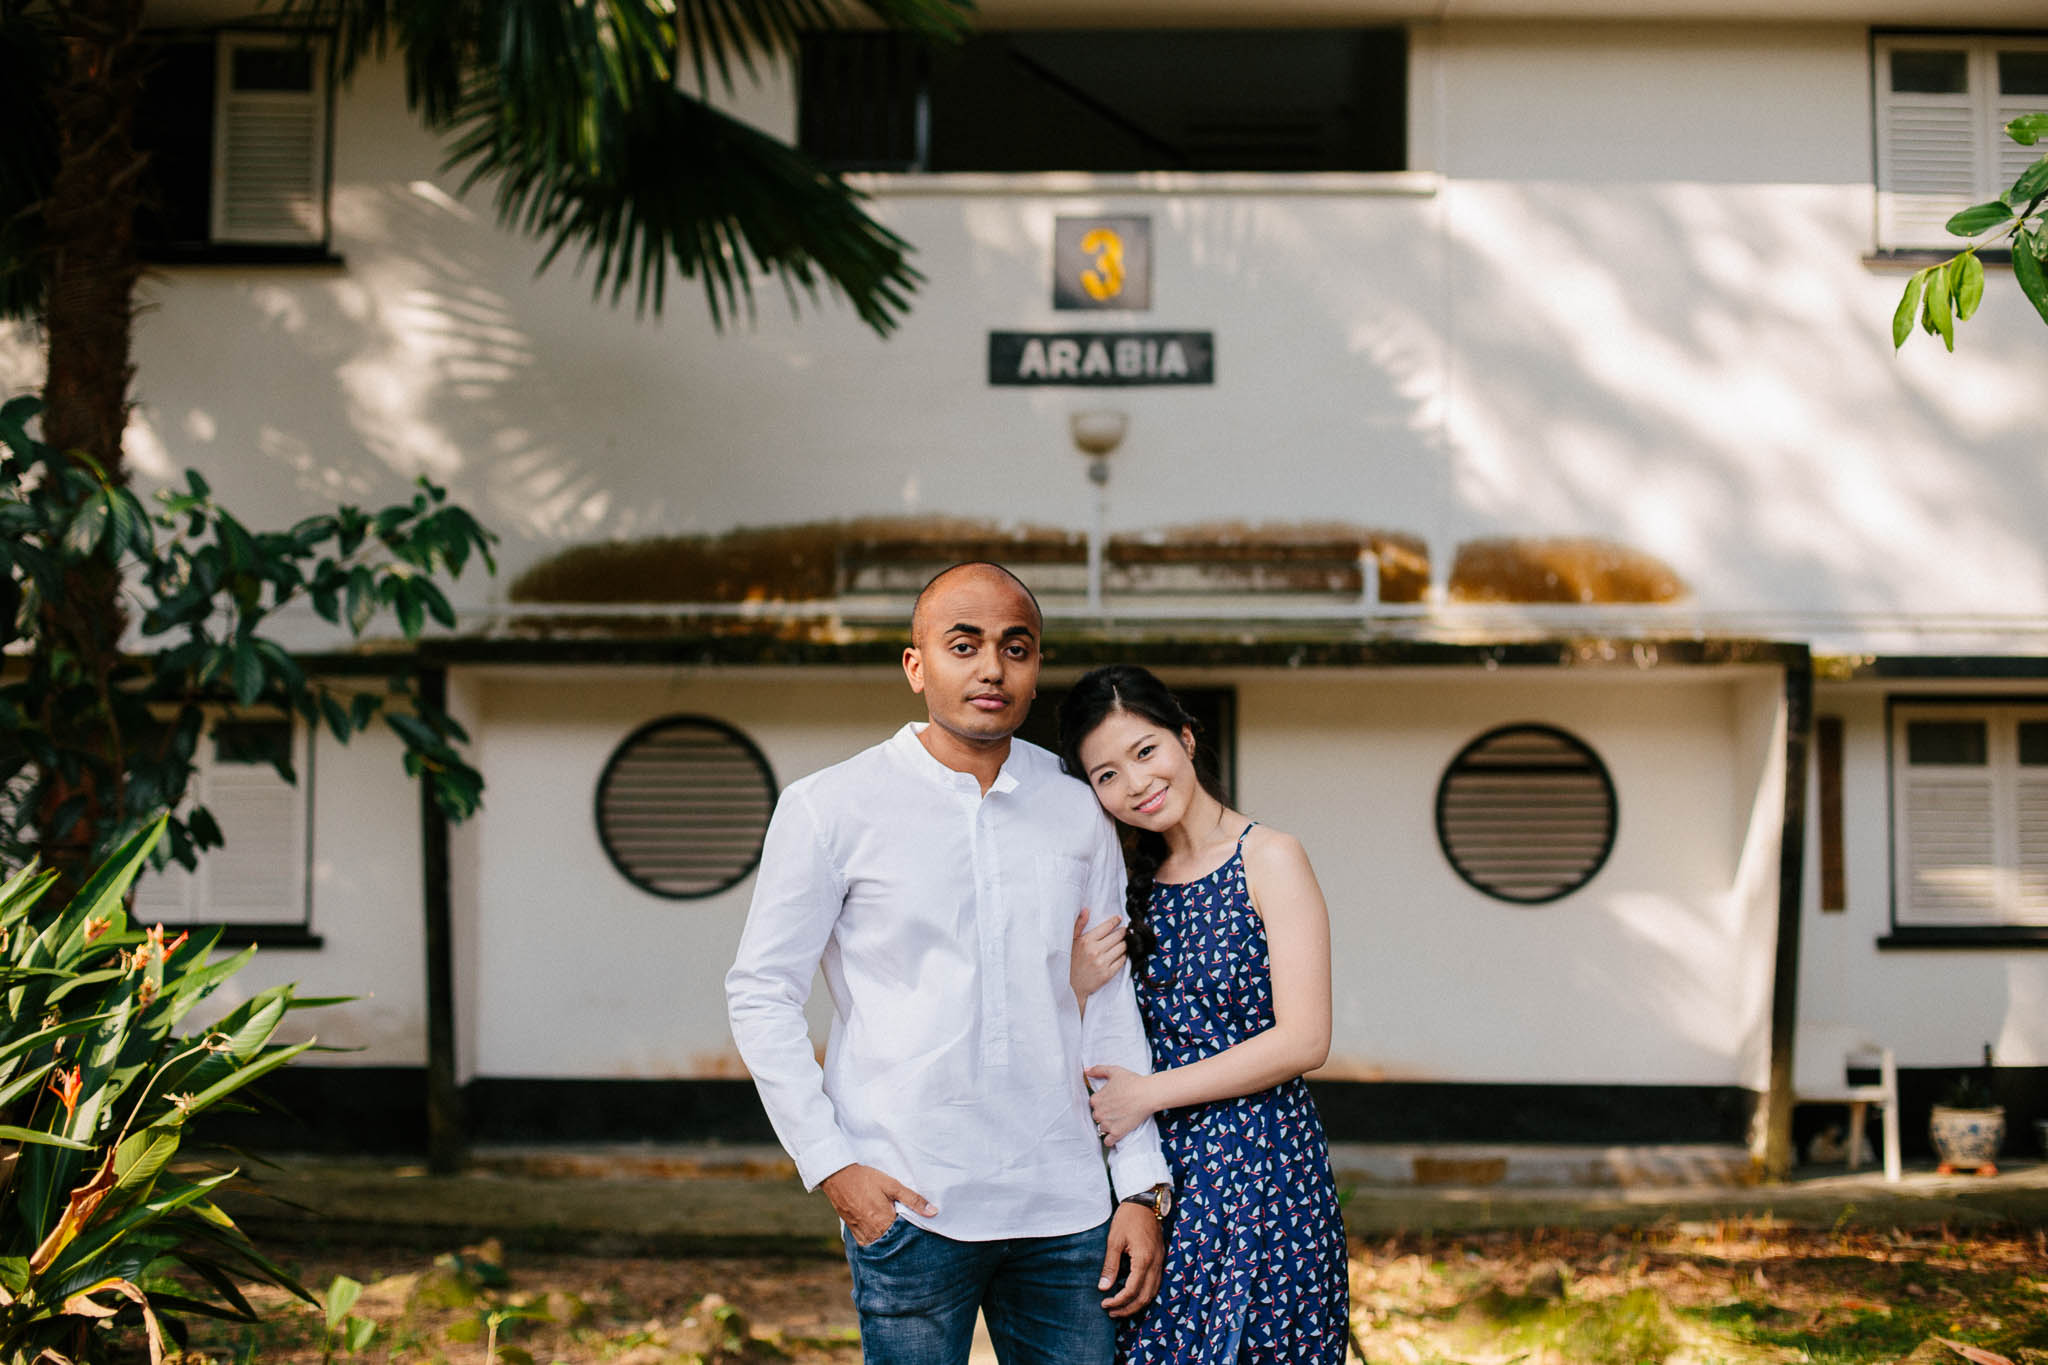 singapore-wedding-photographer-pre-wedding-jonathan-alicia-012.jpg